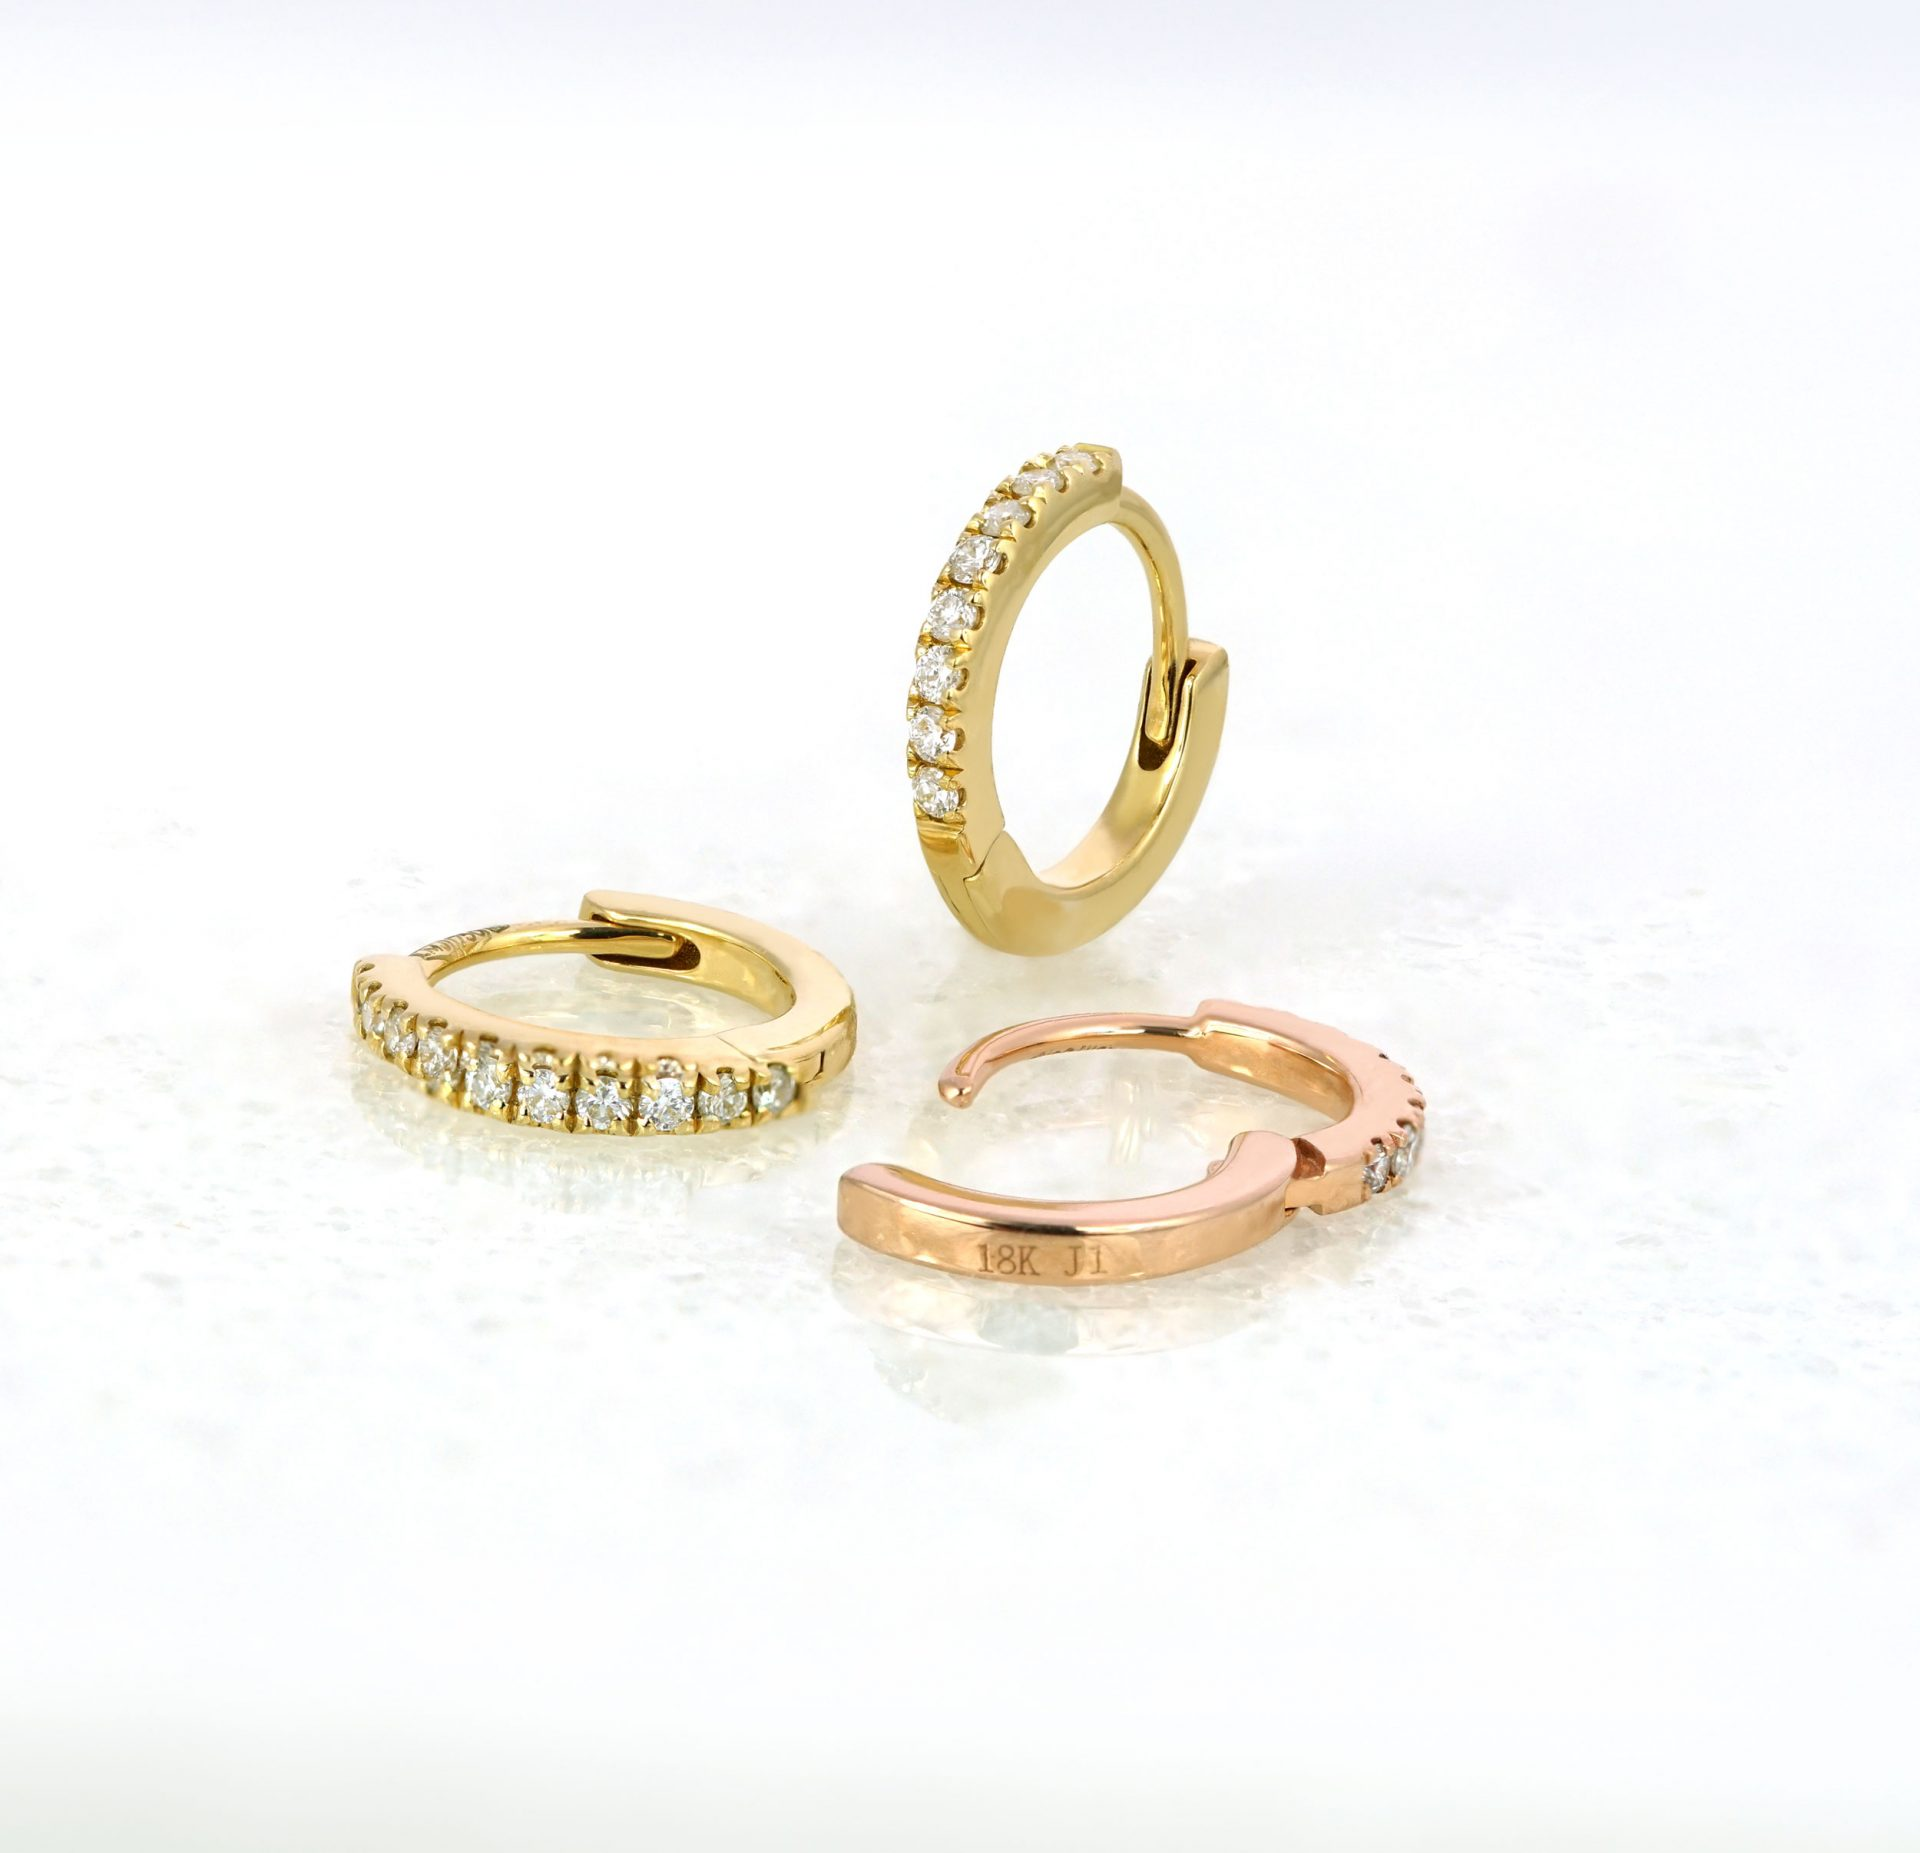 lena-cohen-luxury-piercings-london-18k-rose-yellow-white-solid-gold-natural-diamond-huggie-hoop-earrings